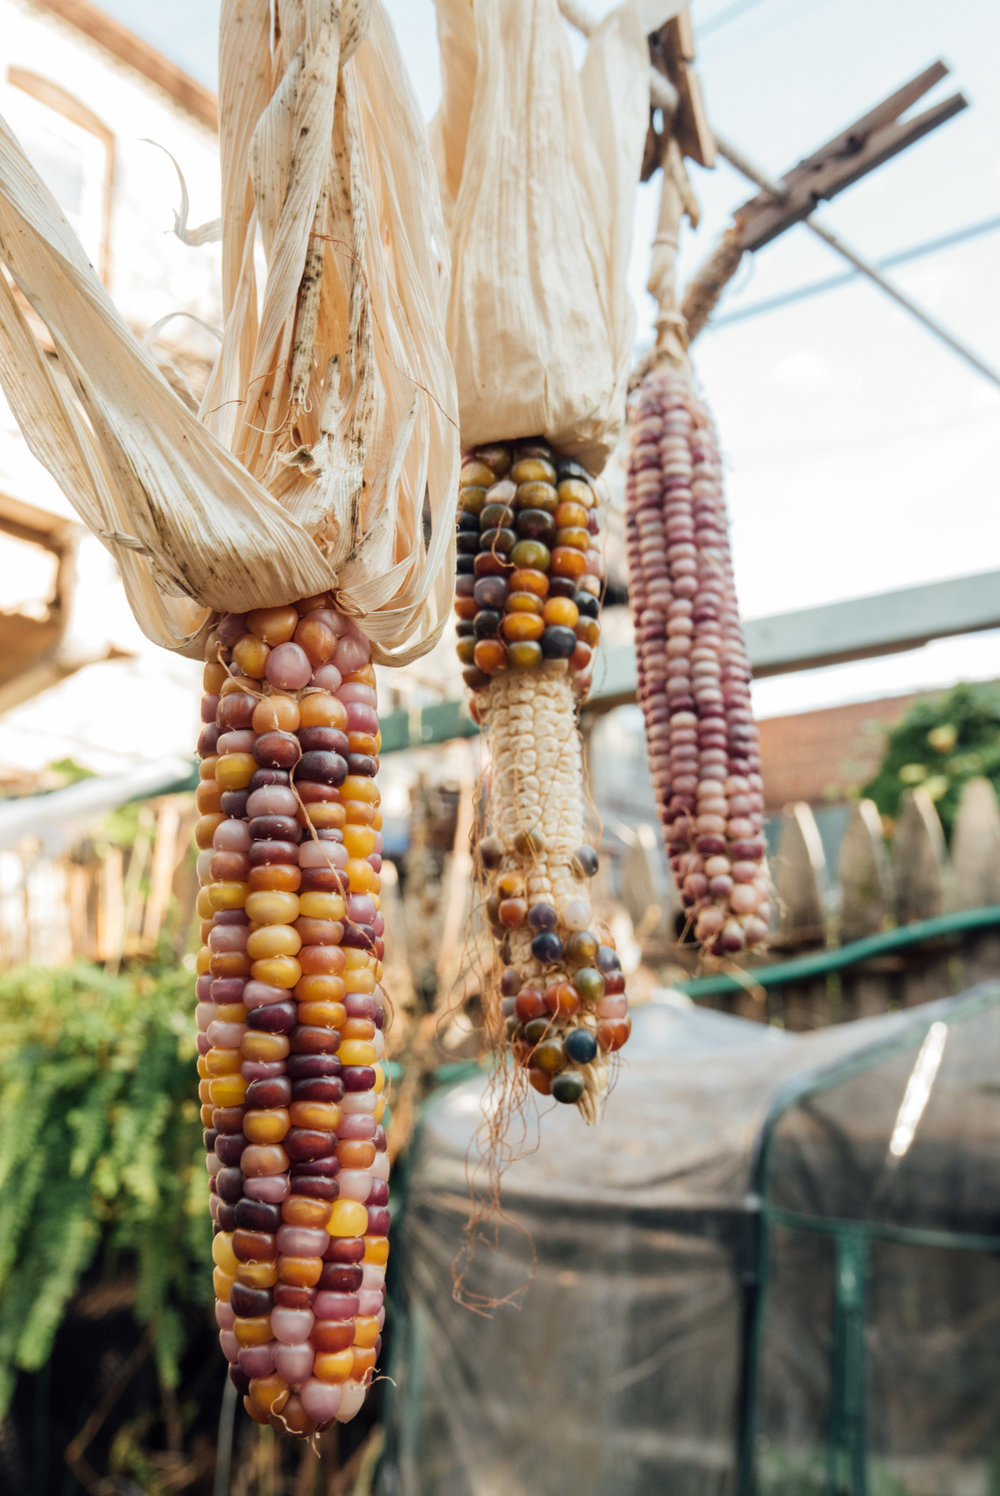 Decorative corn grown from seed for Halloween decorations.